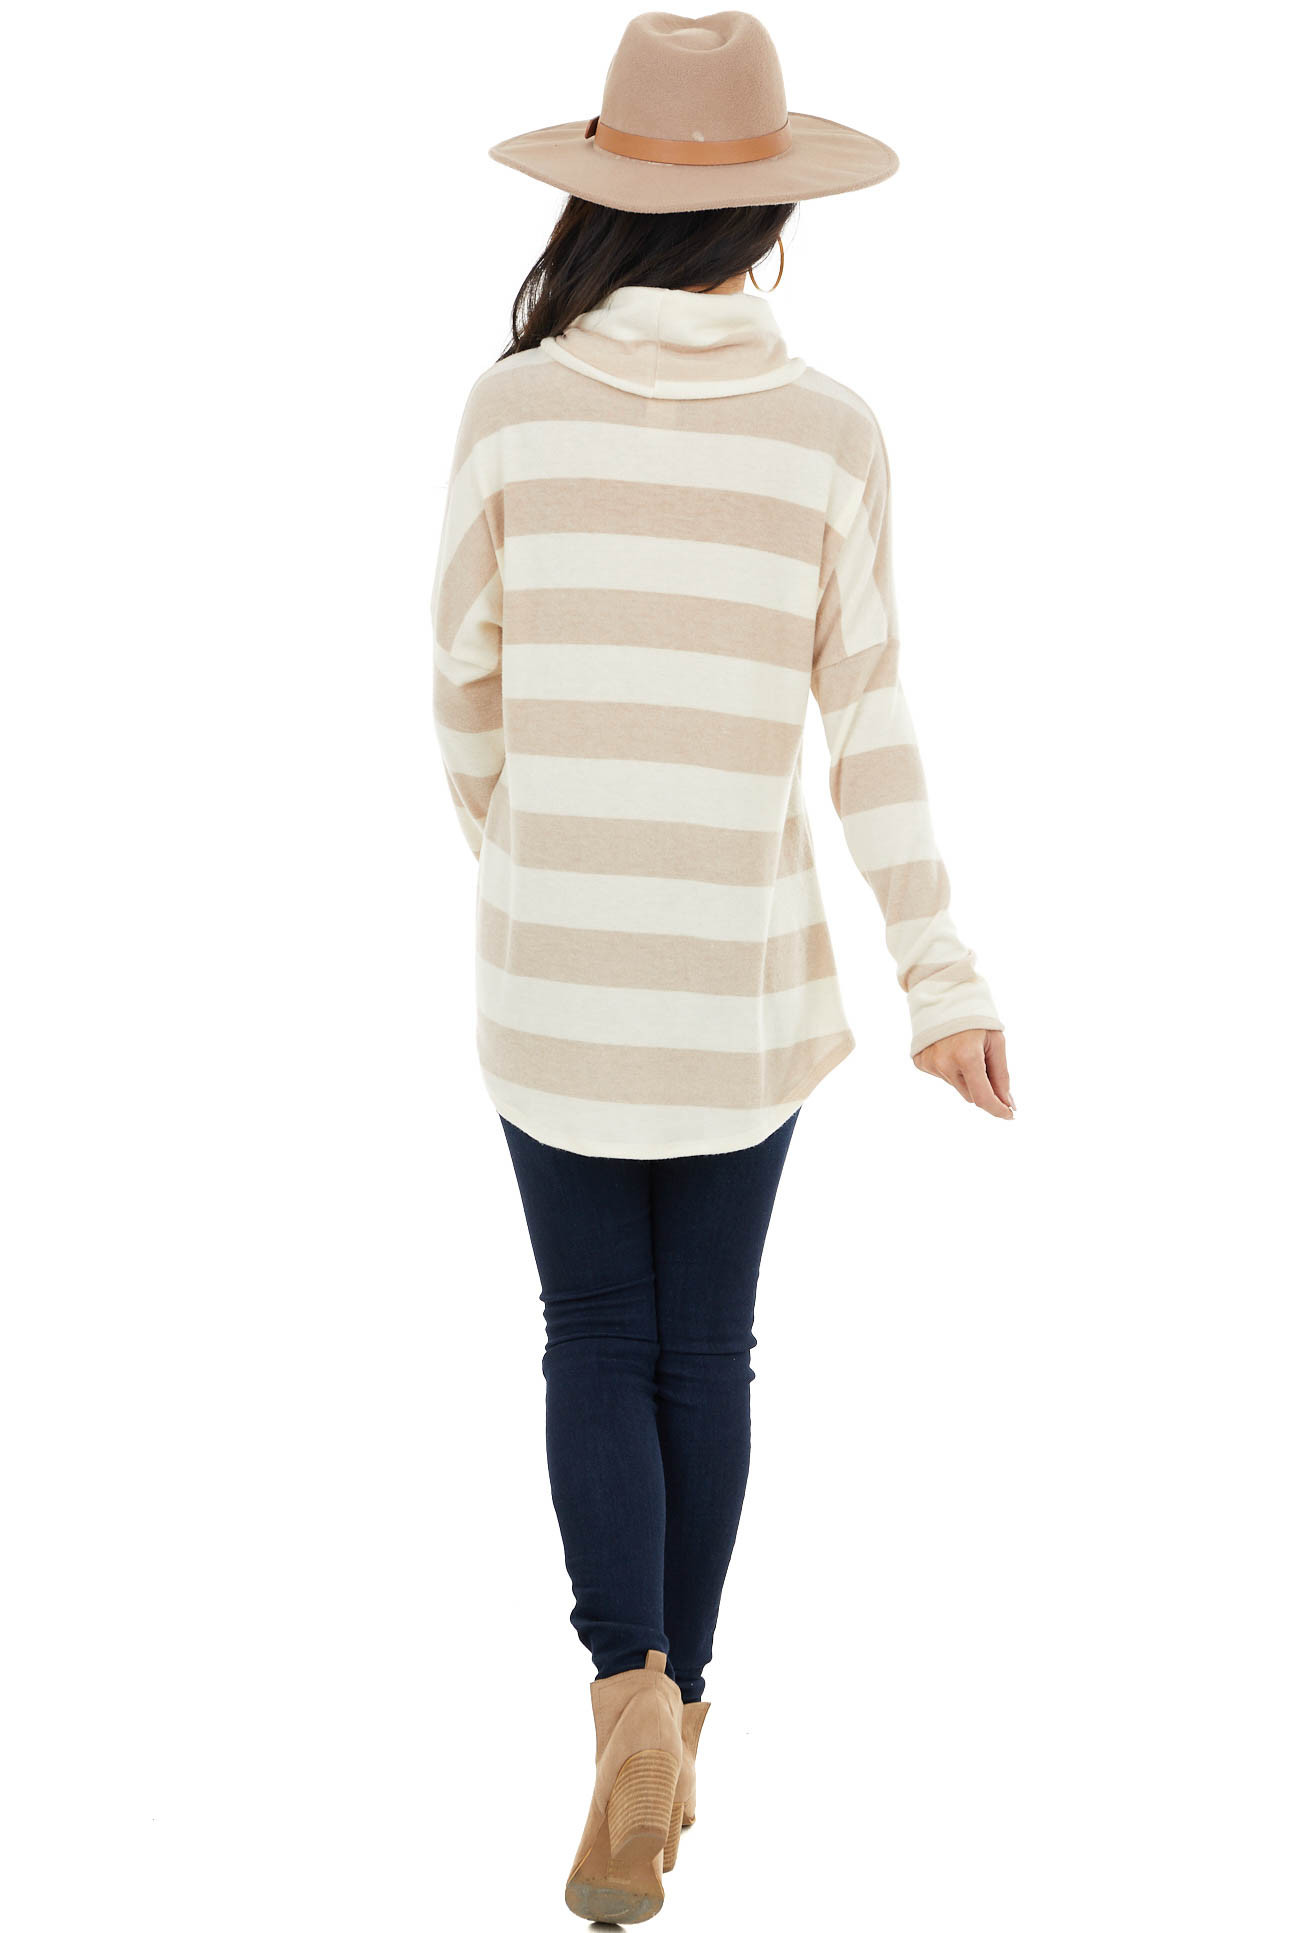 Desert Sand Striped Knit Top with Cowl Neck and Knot Detail